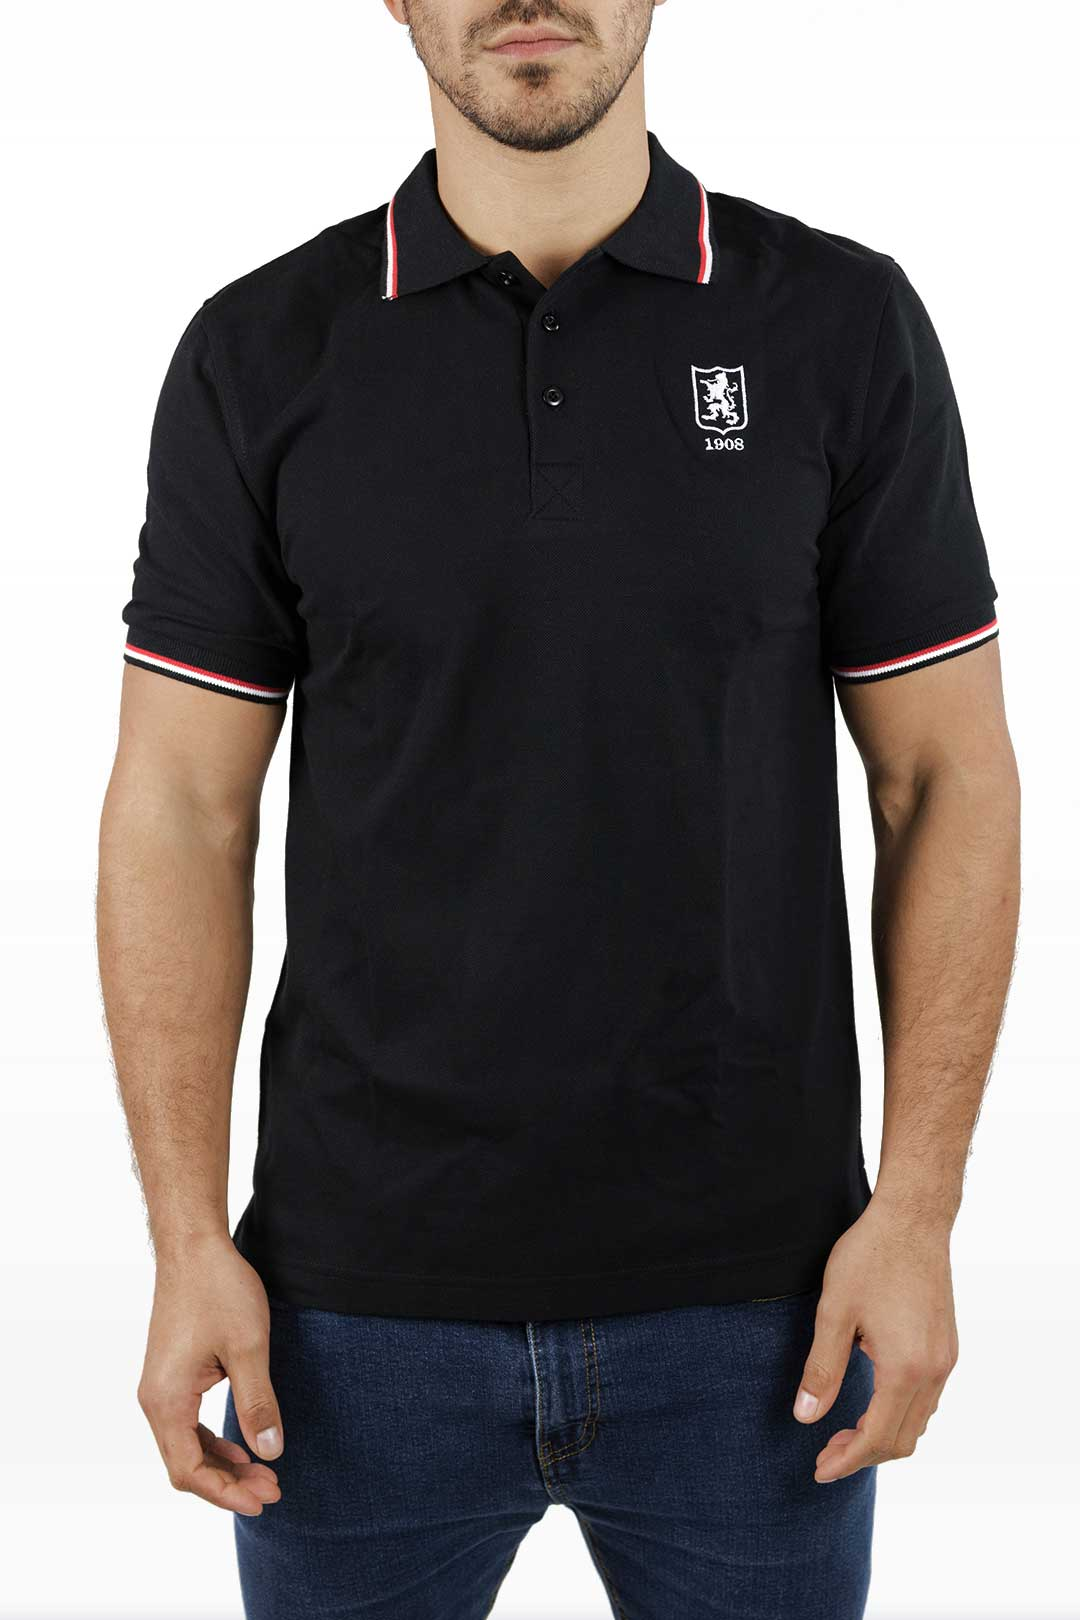 Double Tipped Polo, Rood/Wit (zwart)